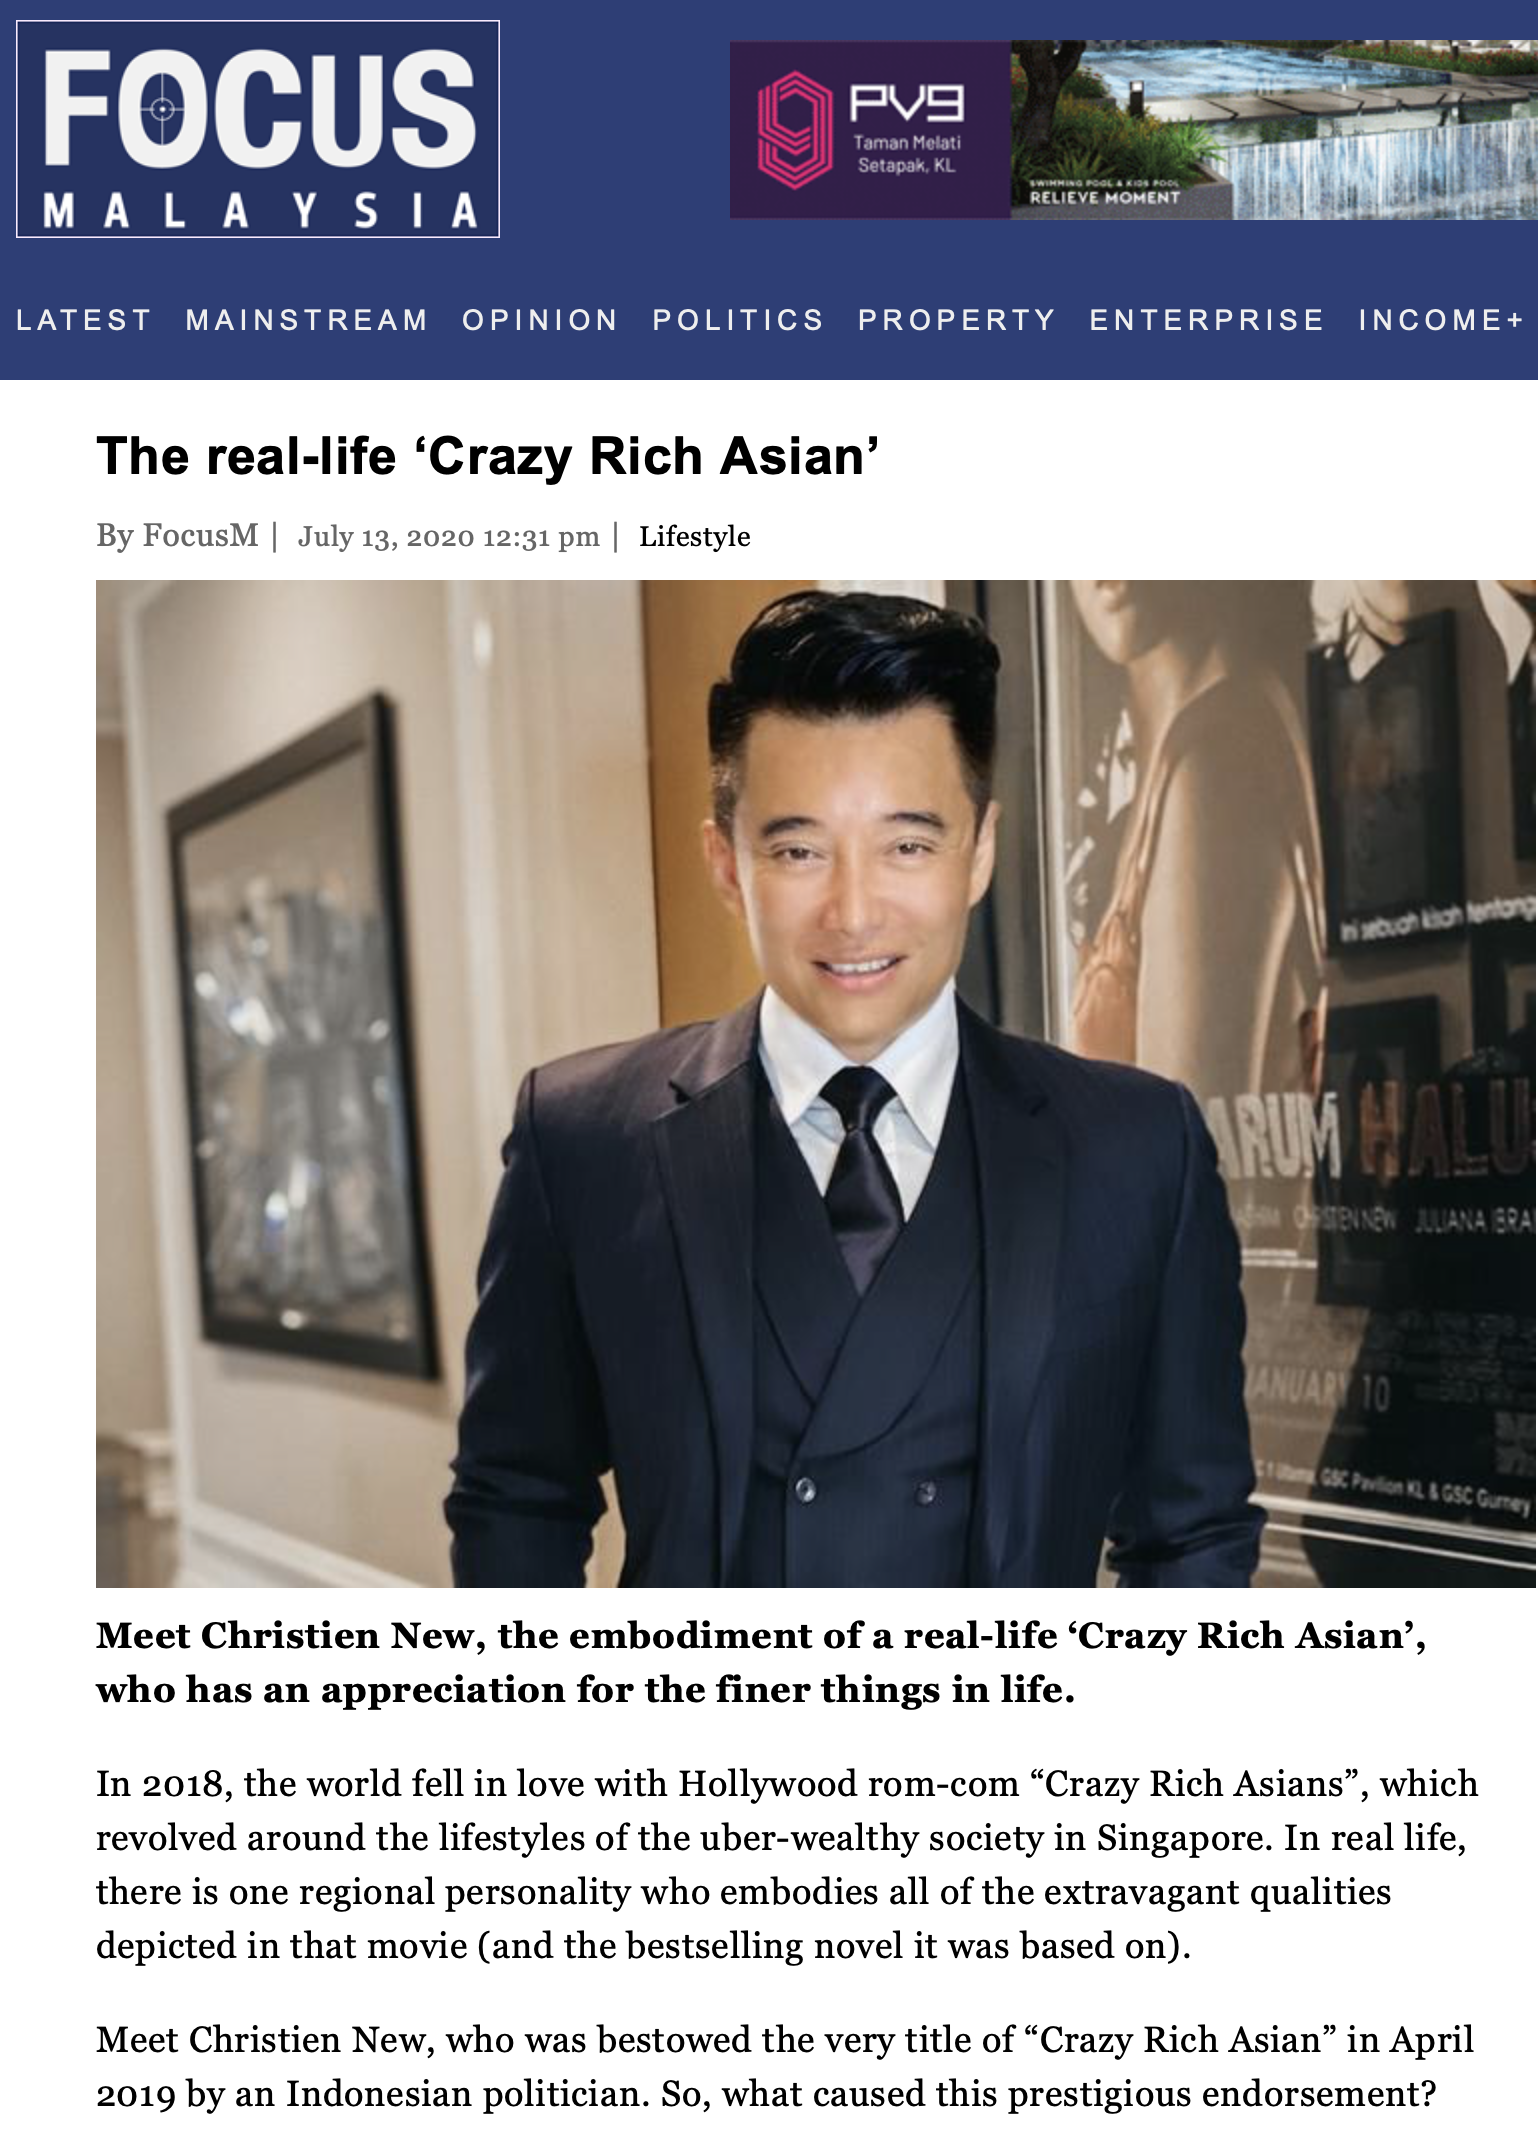 Focus Malaysia Business News – The real-life 'Crazy Rich Asian'